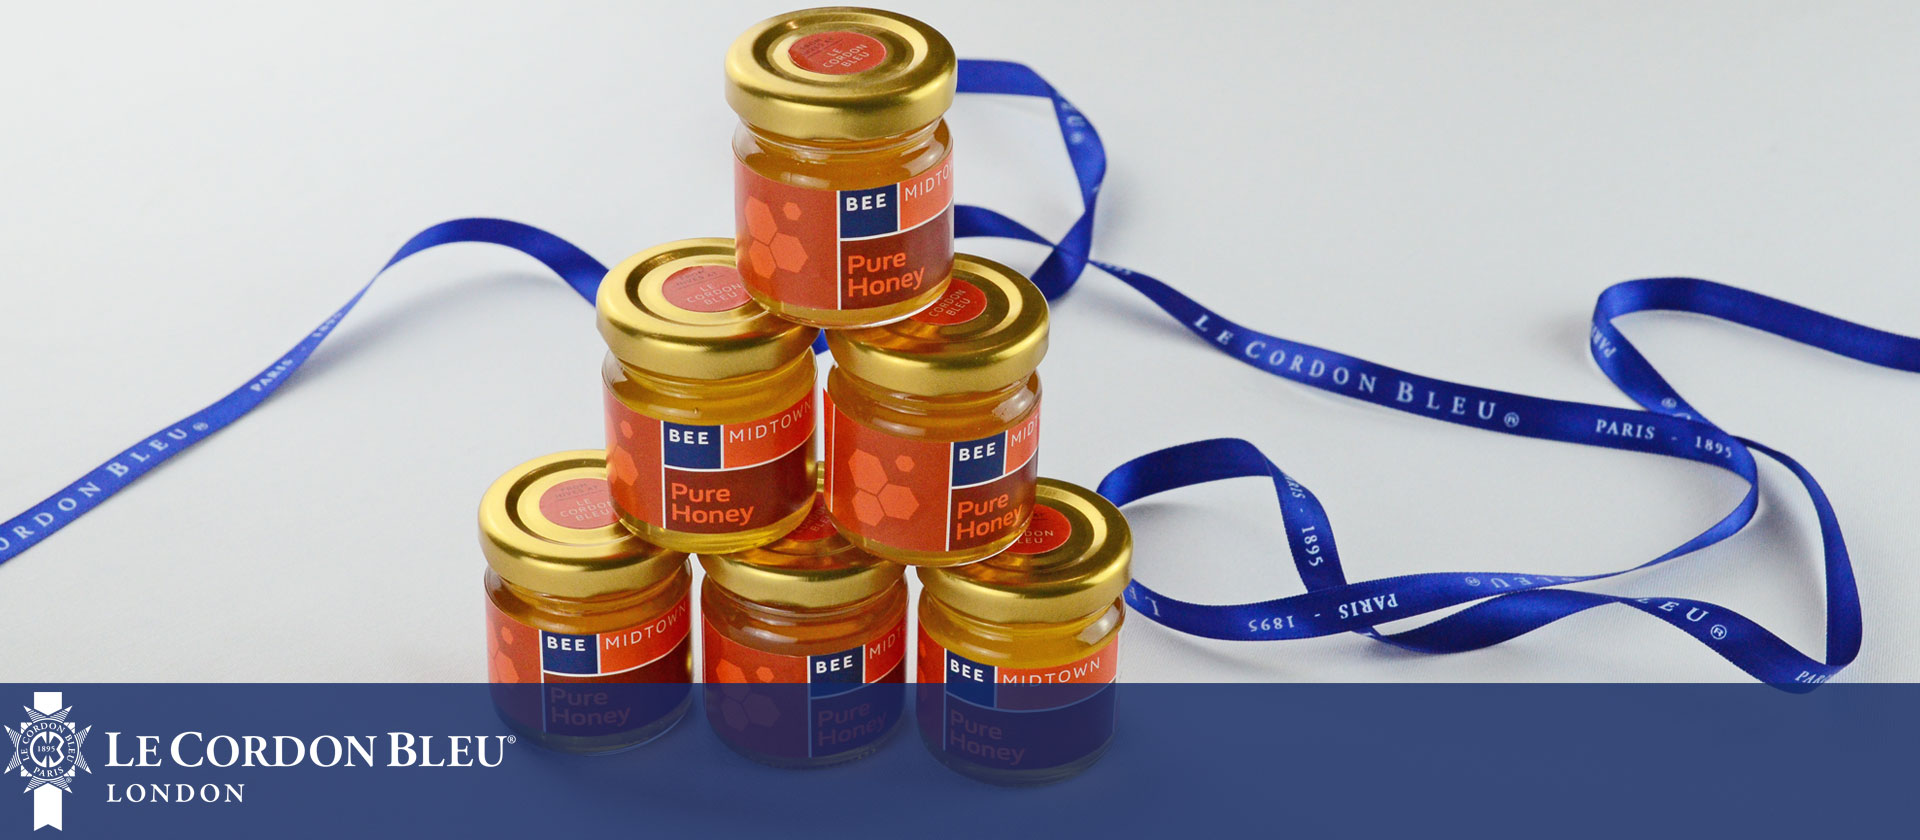 Honey from Le Cordon Bleu London